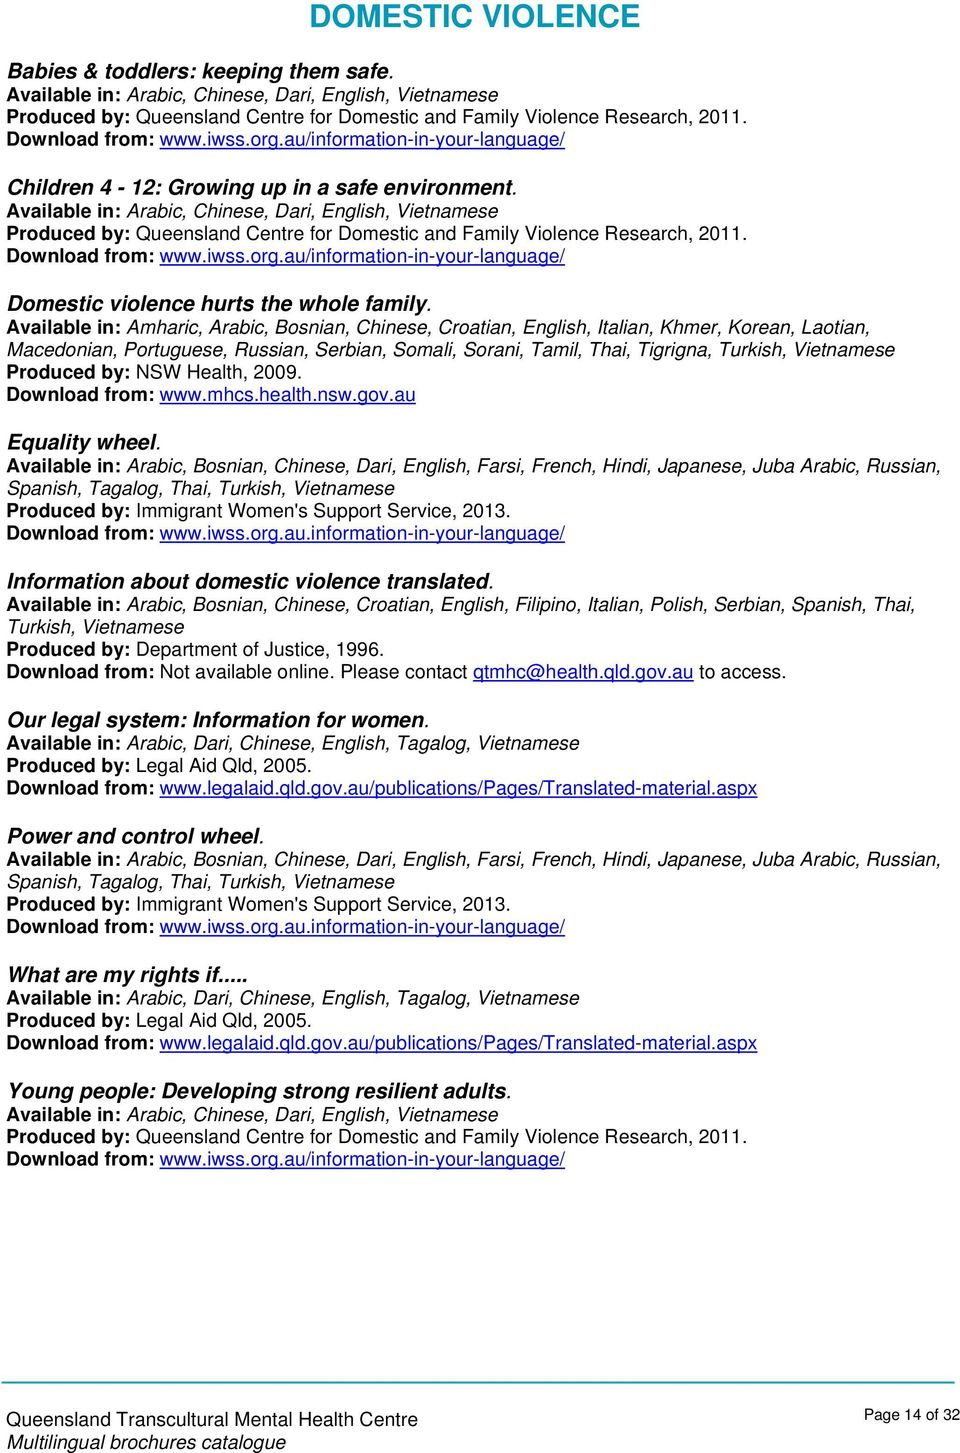 Available in: Arabic, Chinese, Dari, English, Produced by: Queensland Centre for Domestic and Family Violence Research, 2011. Download from: www.iwss.org.